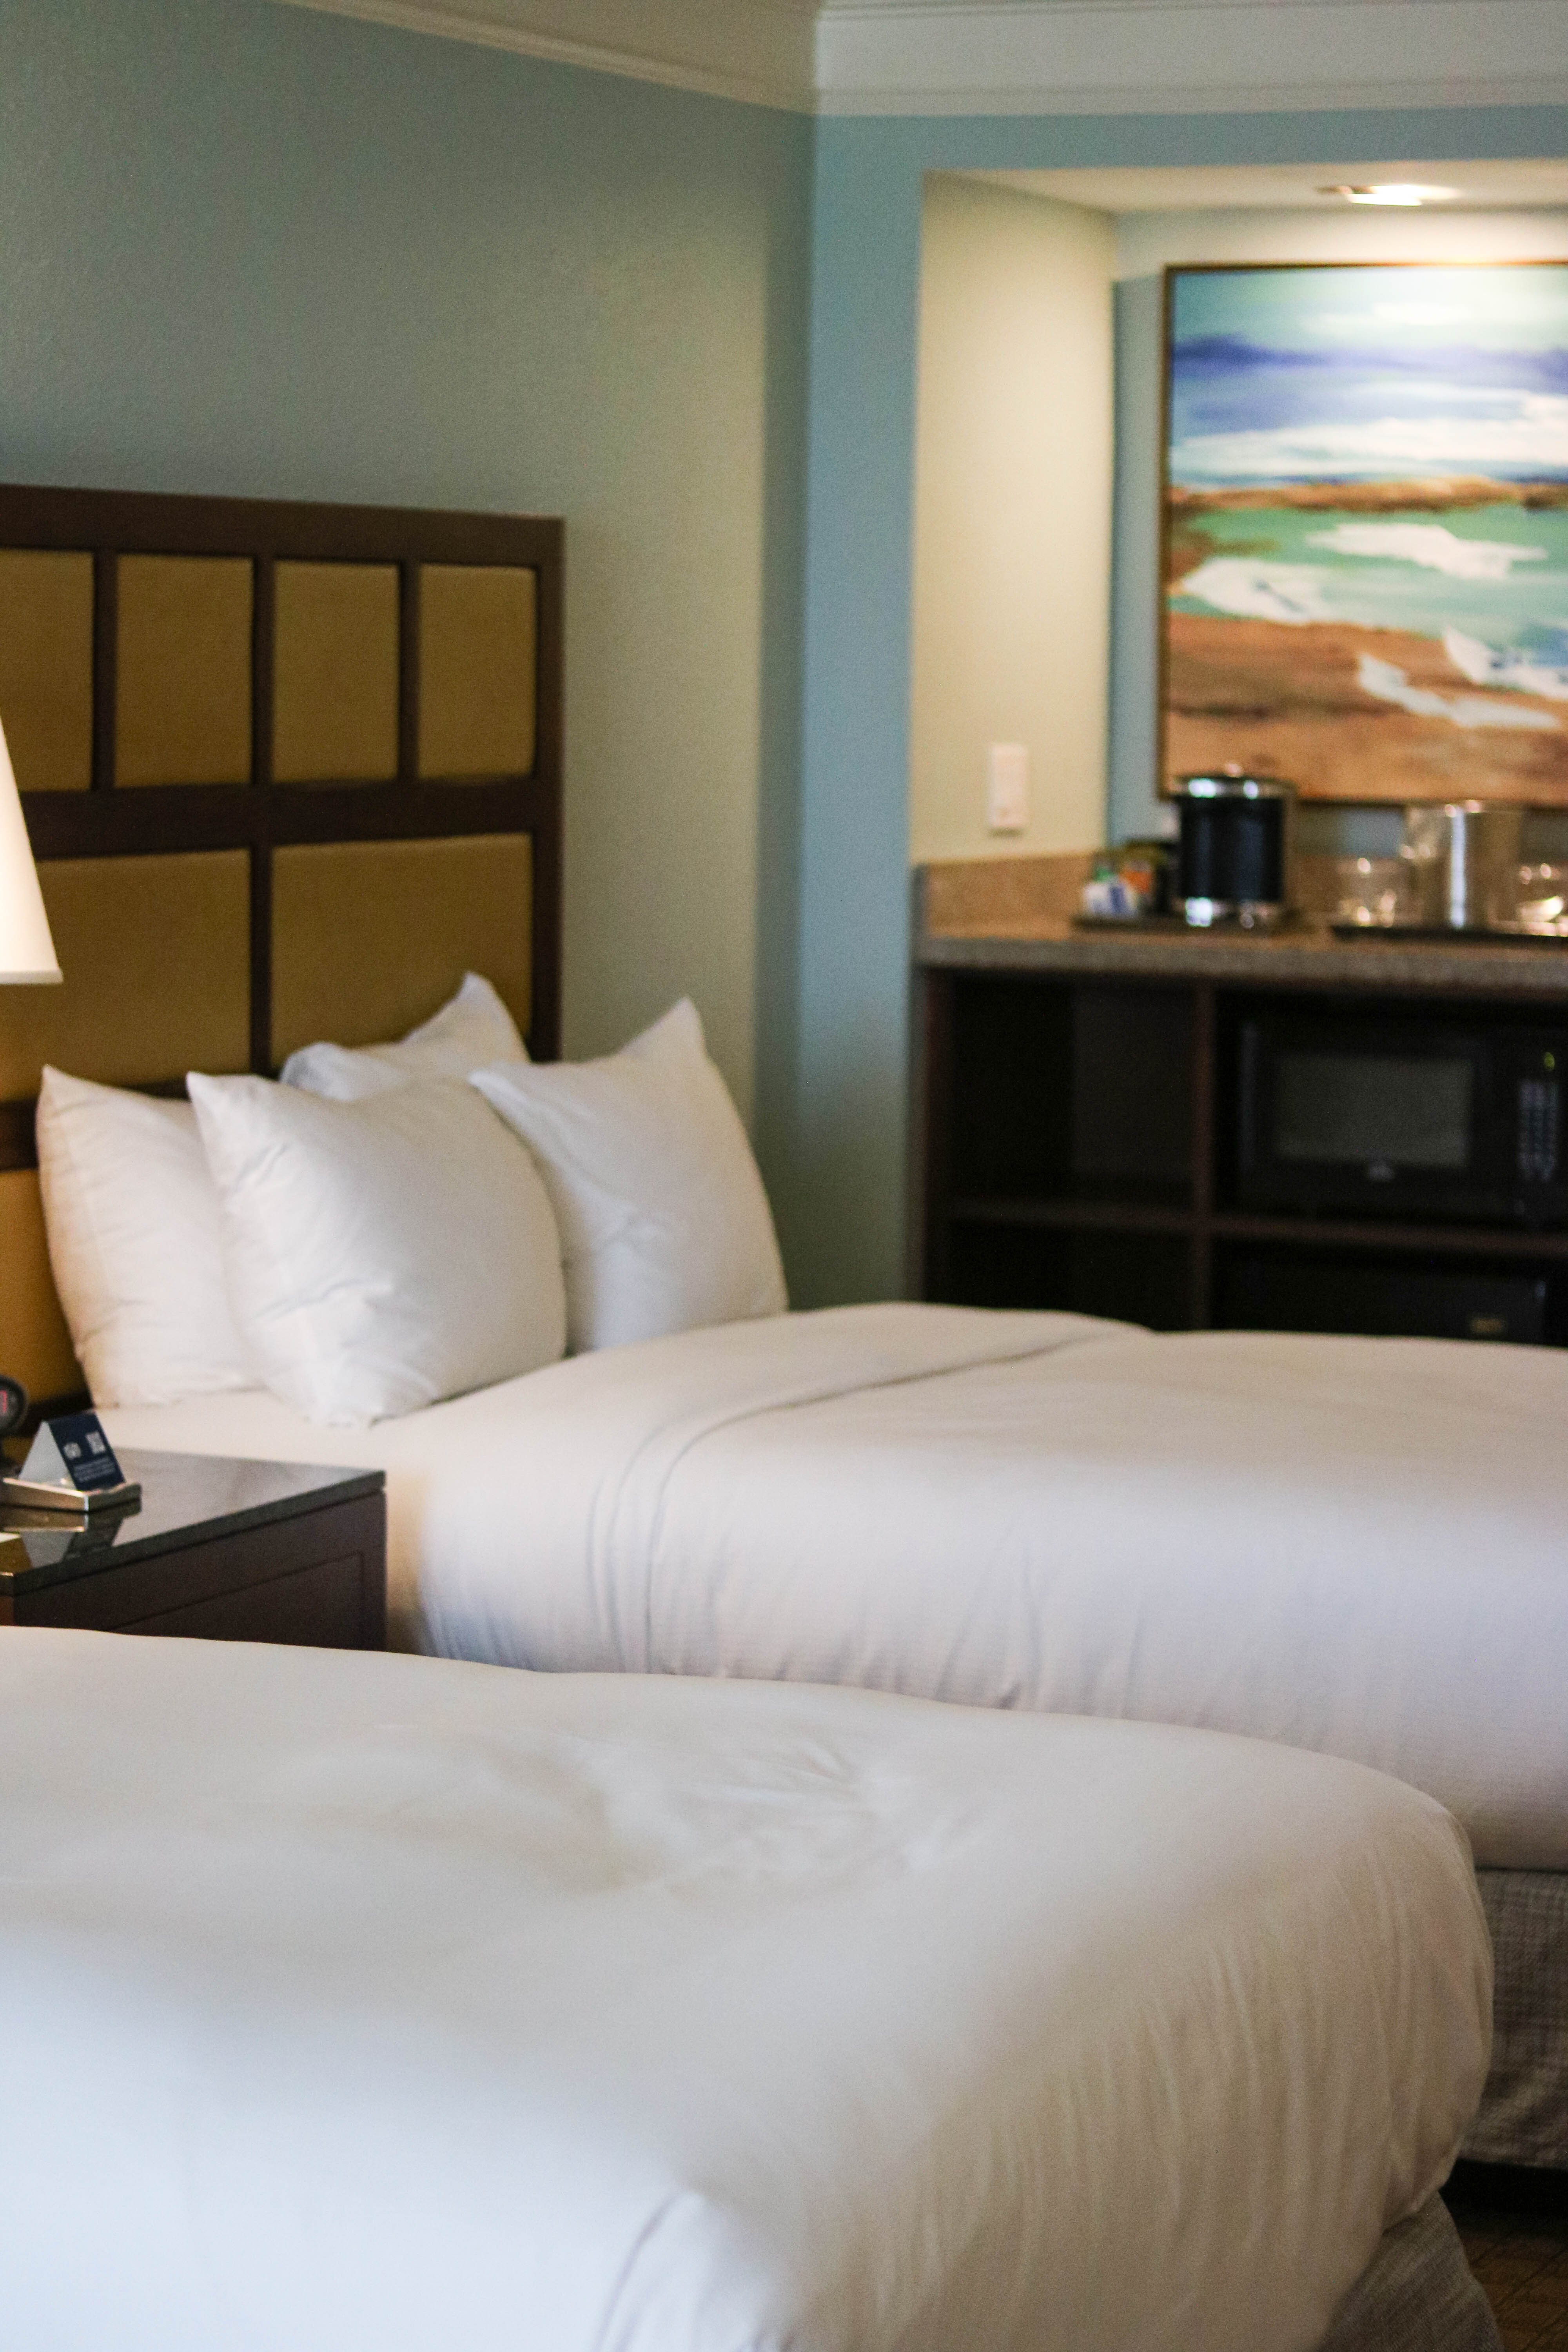 Hilton Sandestin Gold Resort & Spa - Miramar Beach, Florida hotel review on Coming Up Roses